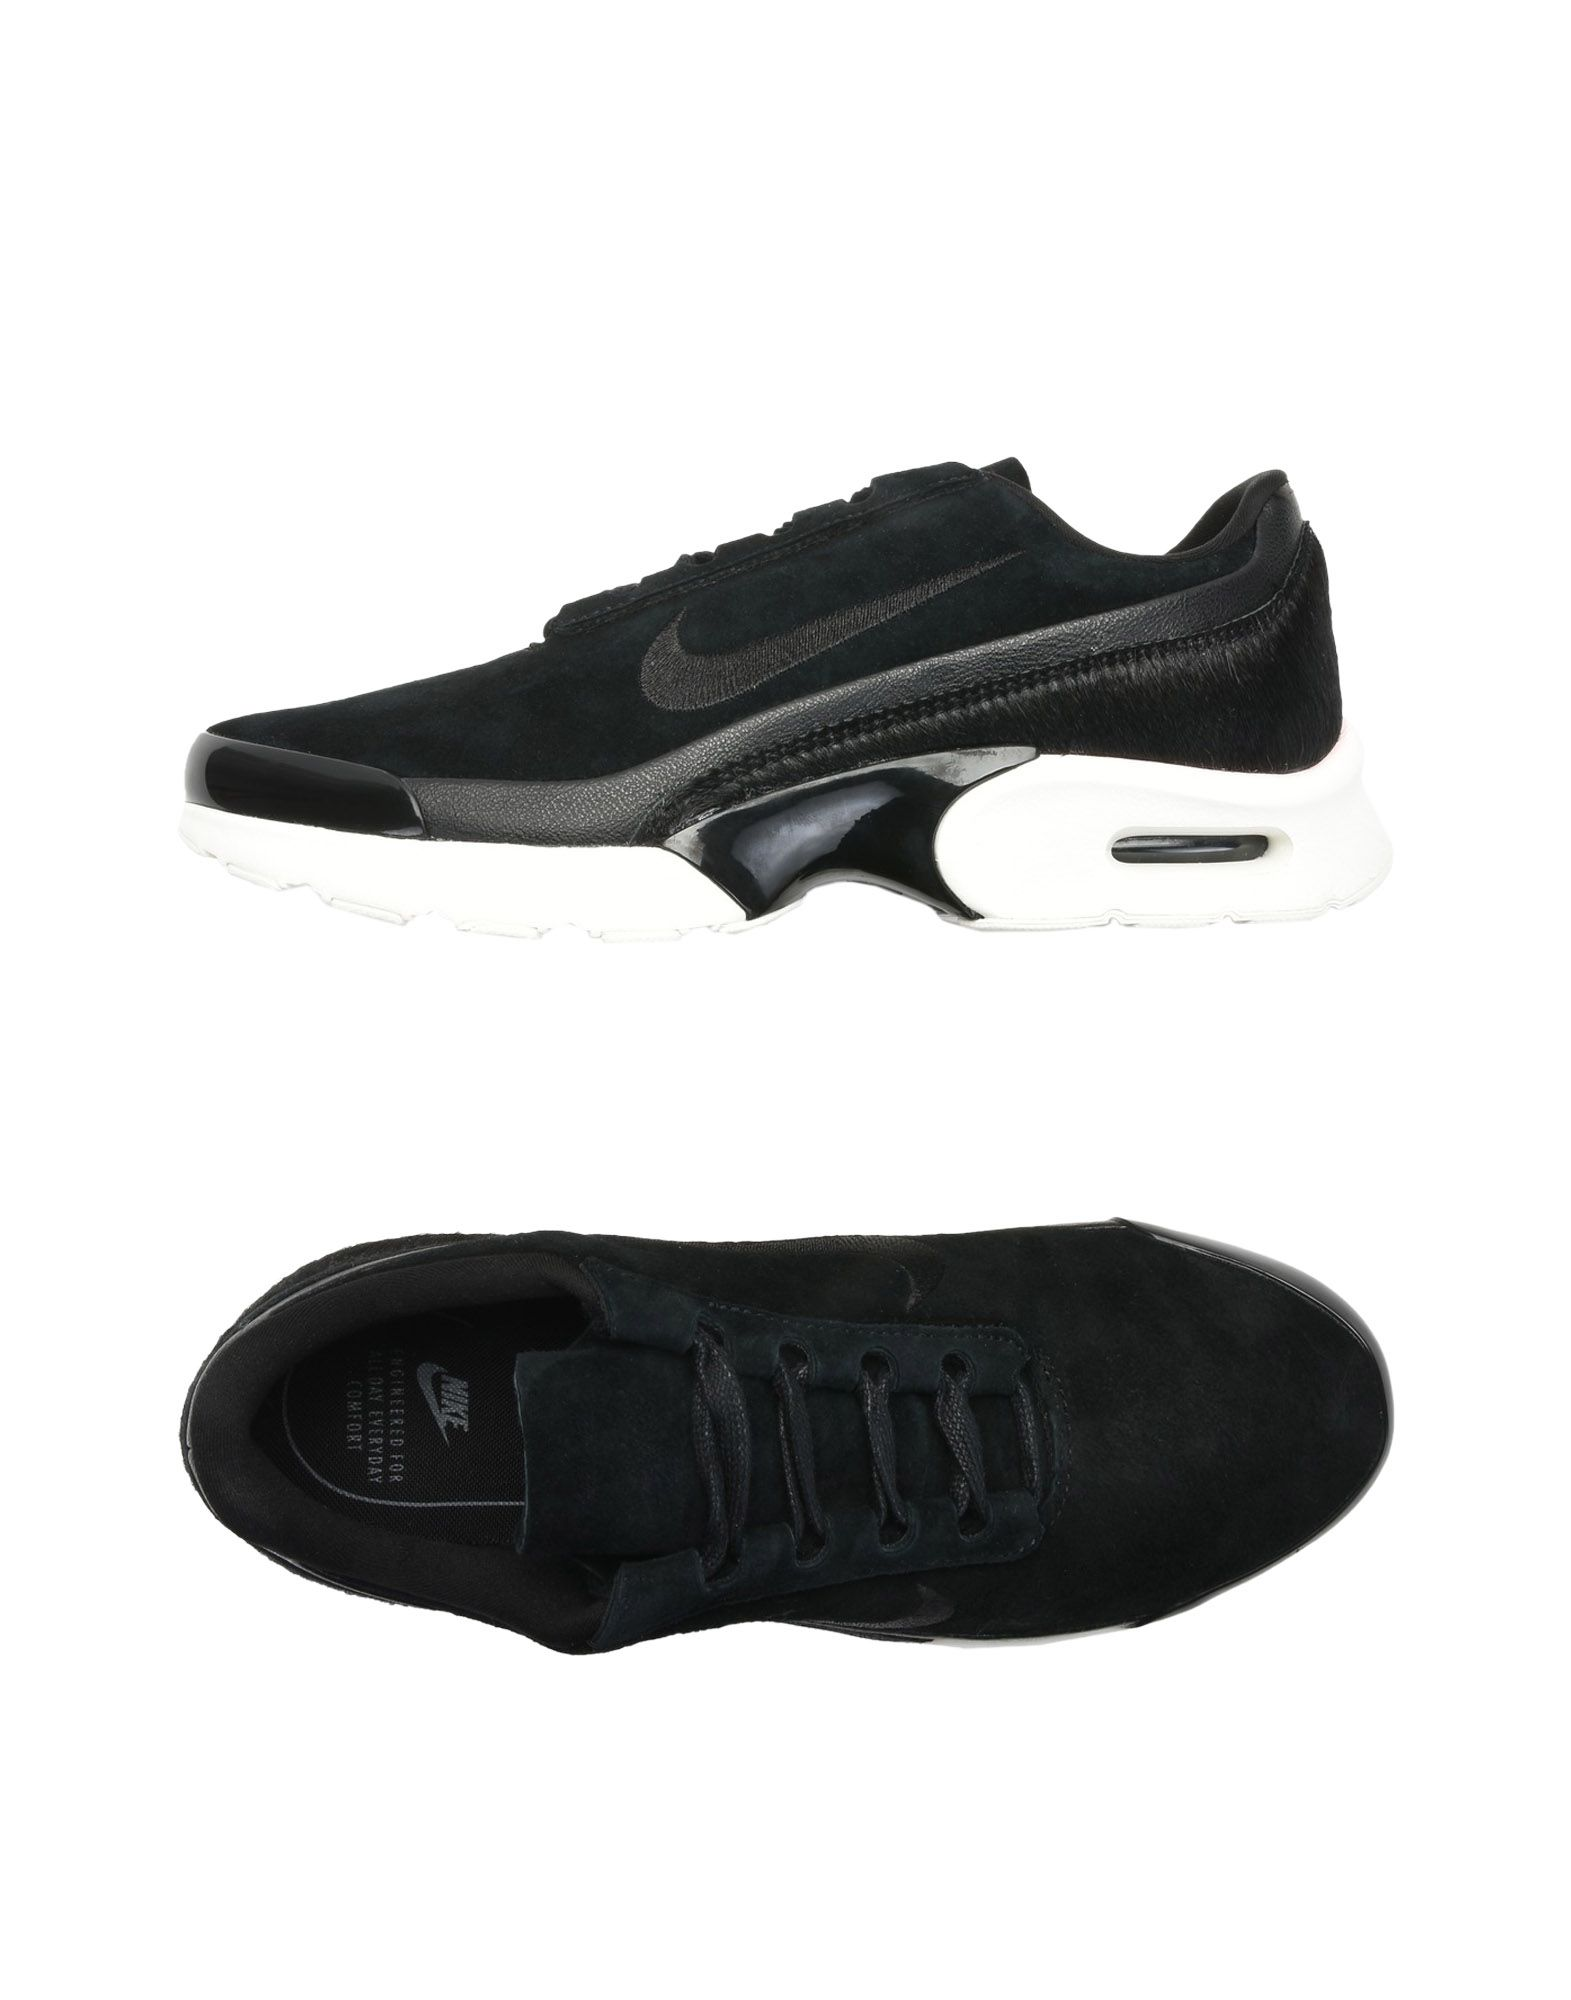 Sneakers Nike W Nike Air Max Jewell Lx - Femme - Sneakers Nike sur